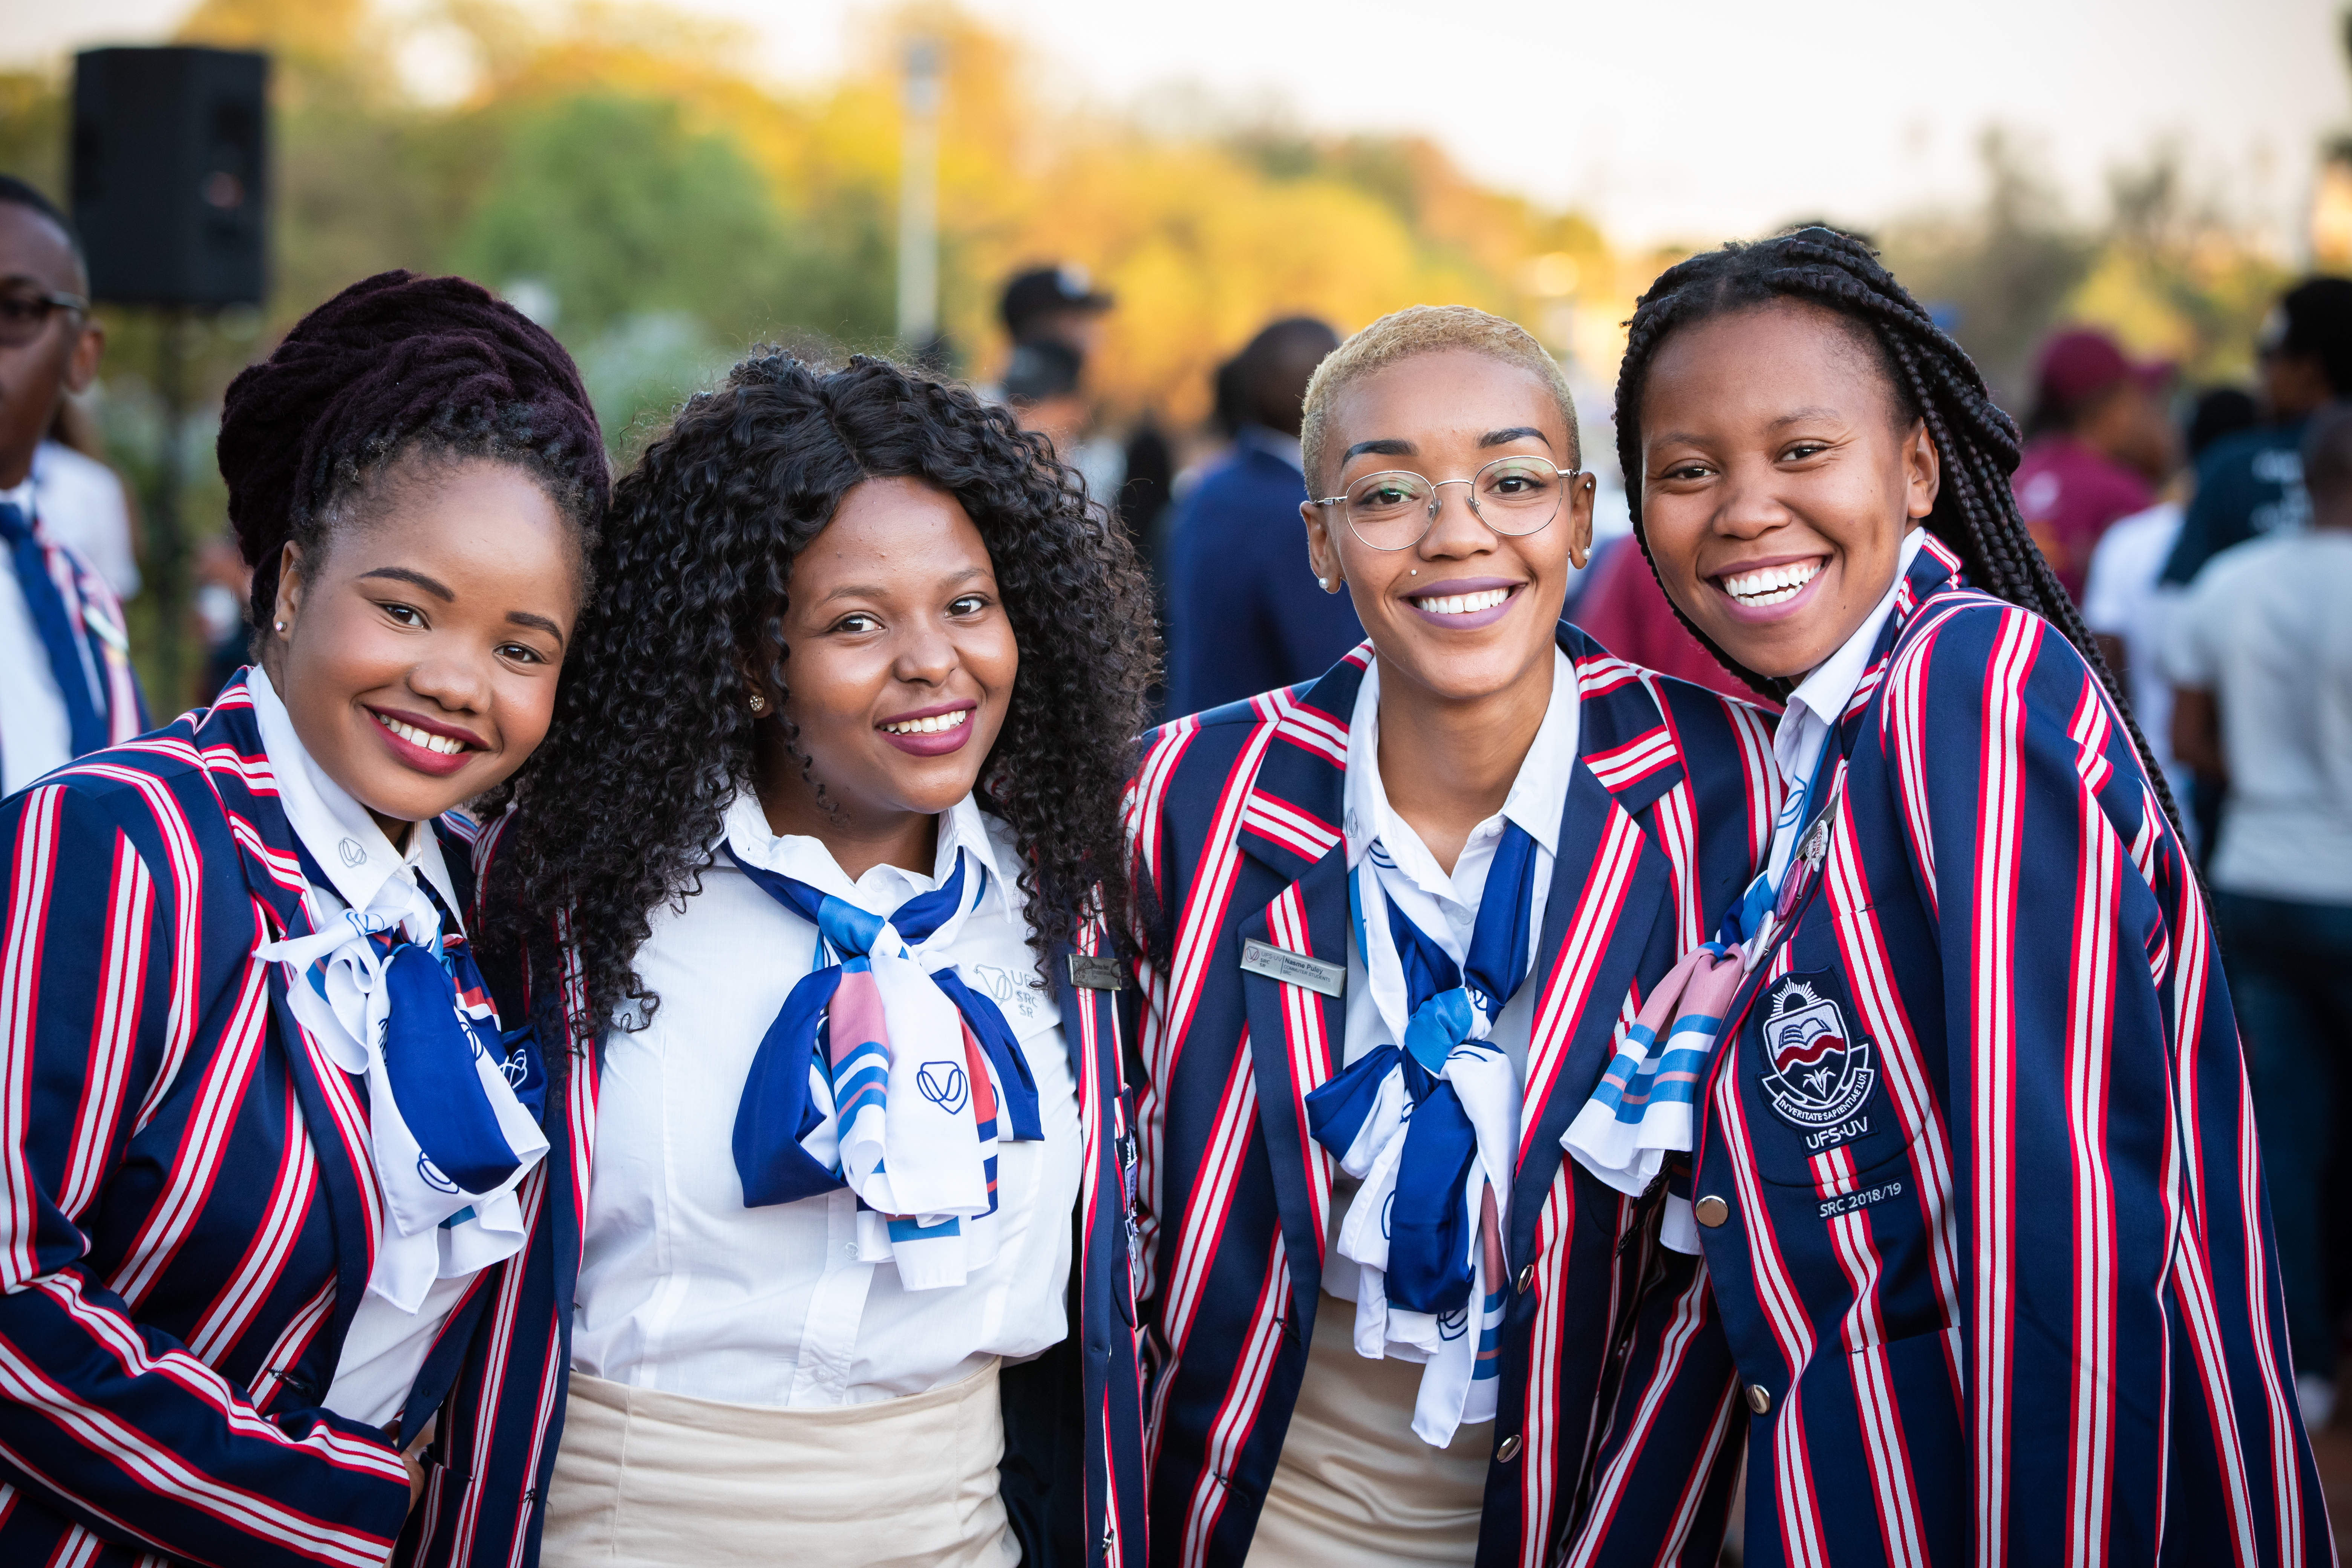 SRC members attended the First Year welcoming ceremony